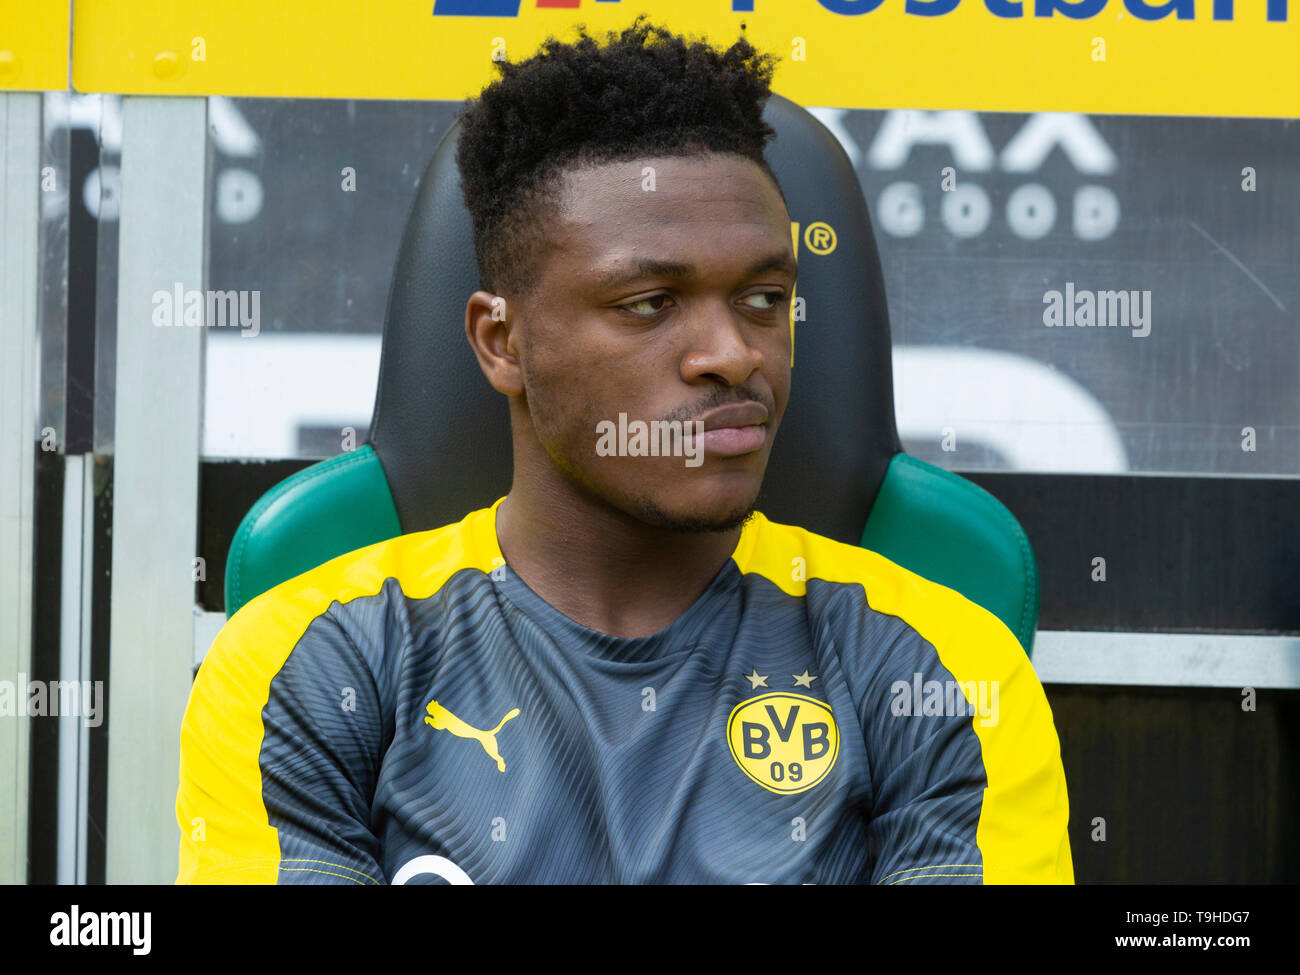 sports, football, Bundesliga, 2018/2019, Borussia Moenchengladbach vs. BVB Borussia Dortmund 0-2, Stadium Borussia Park, players bench, Dan Axel Zagadou (BVB), DFL REGULATIONS PROHIBIT ANY USE OF PHOTOGRAPHS AS IMAGE SEQUENCES AND/OR QUASI-VIDEO - Stock Image